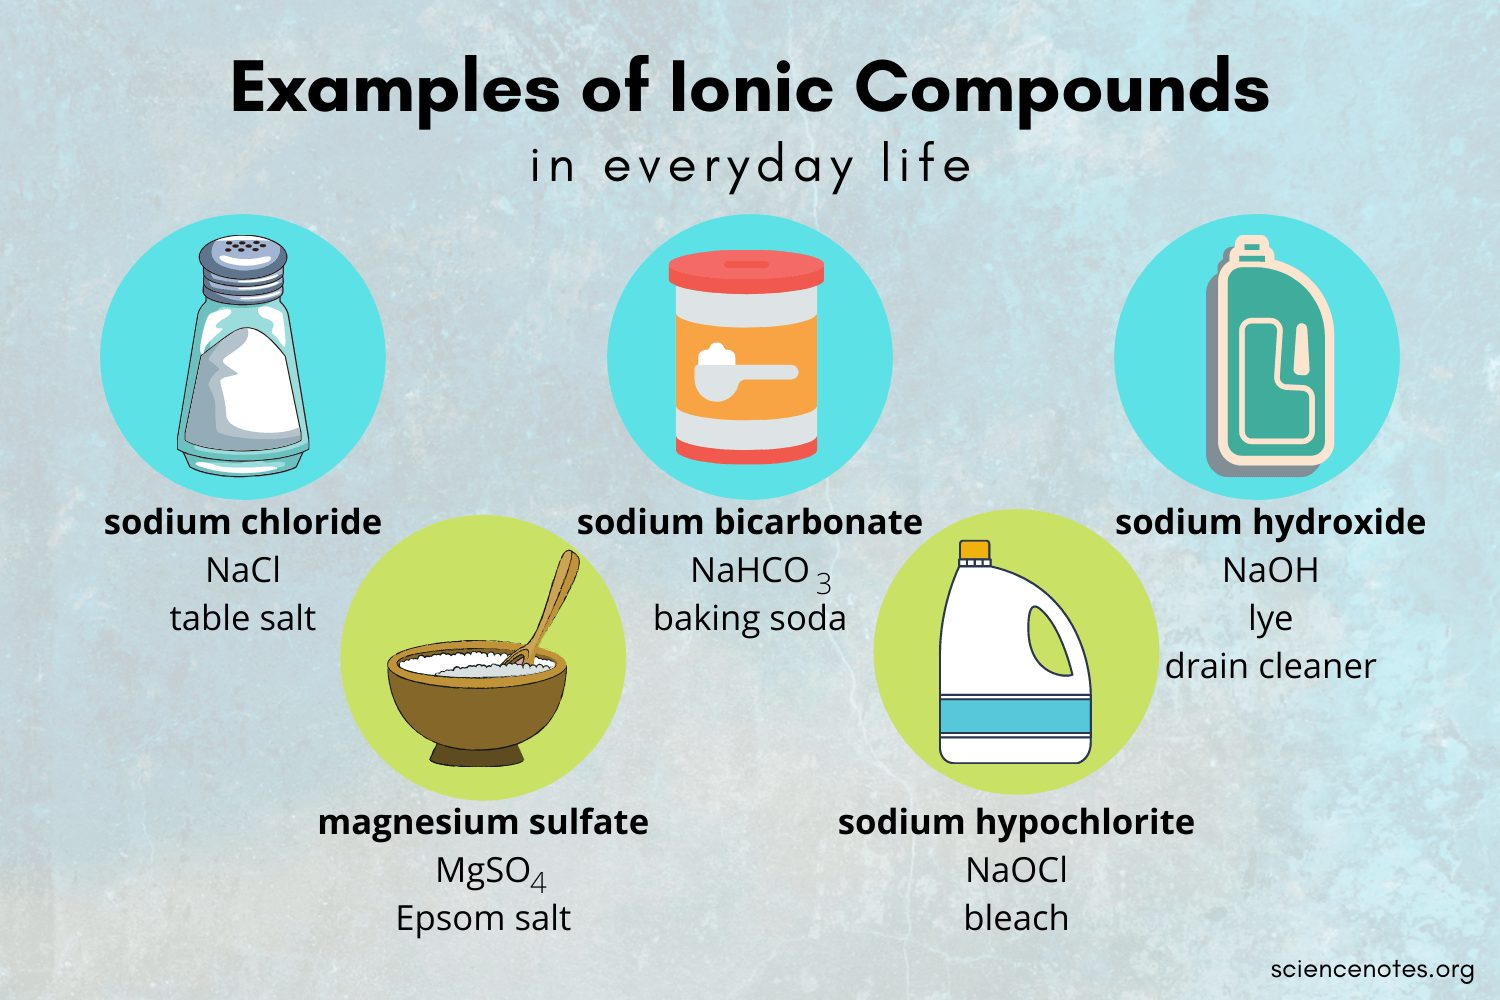 Examples of Ionic Compounds in Everyday Life